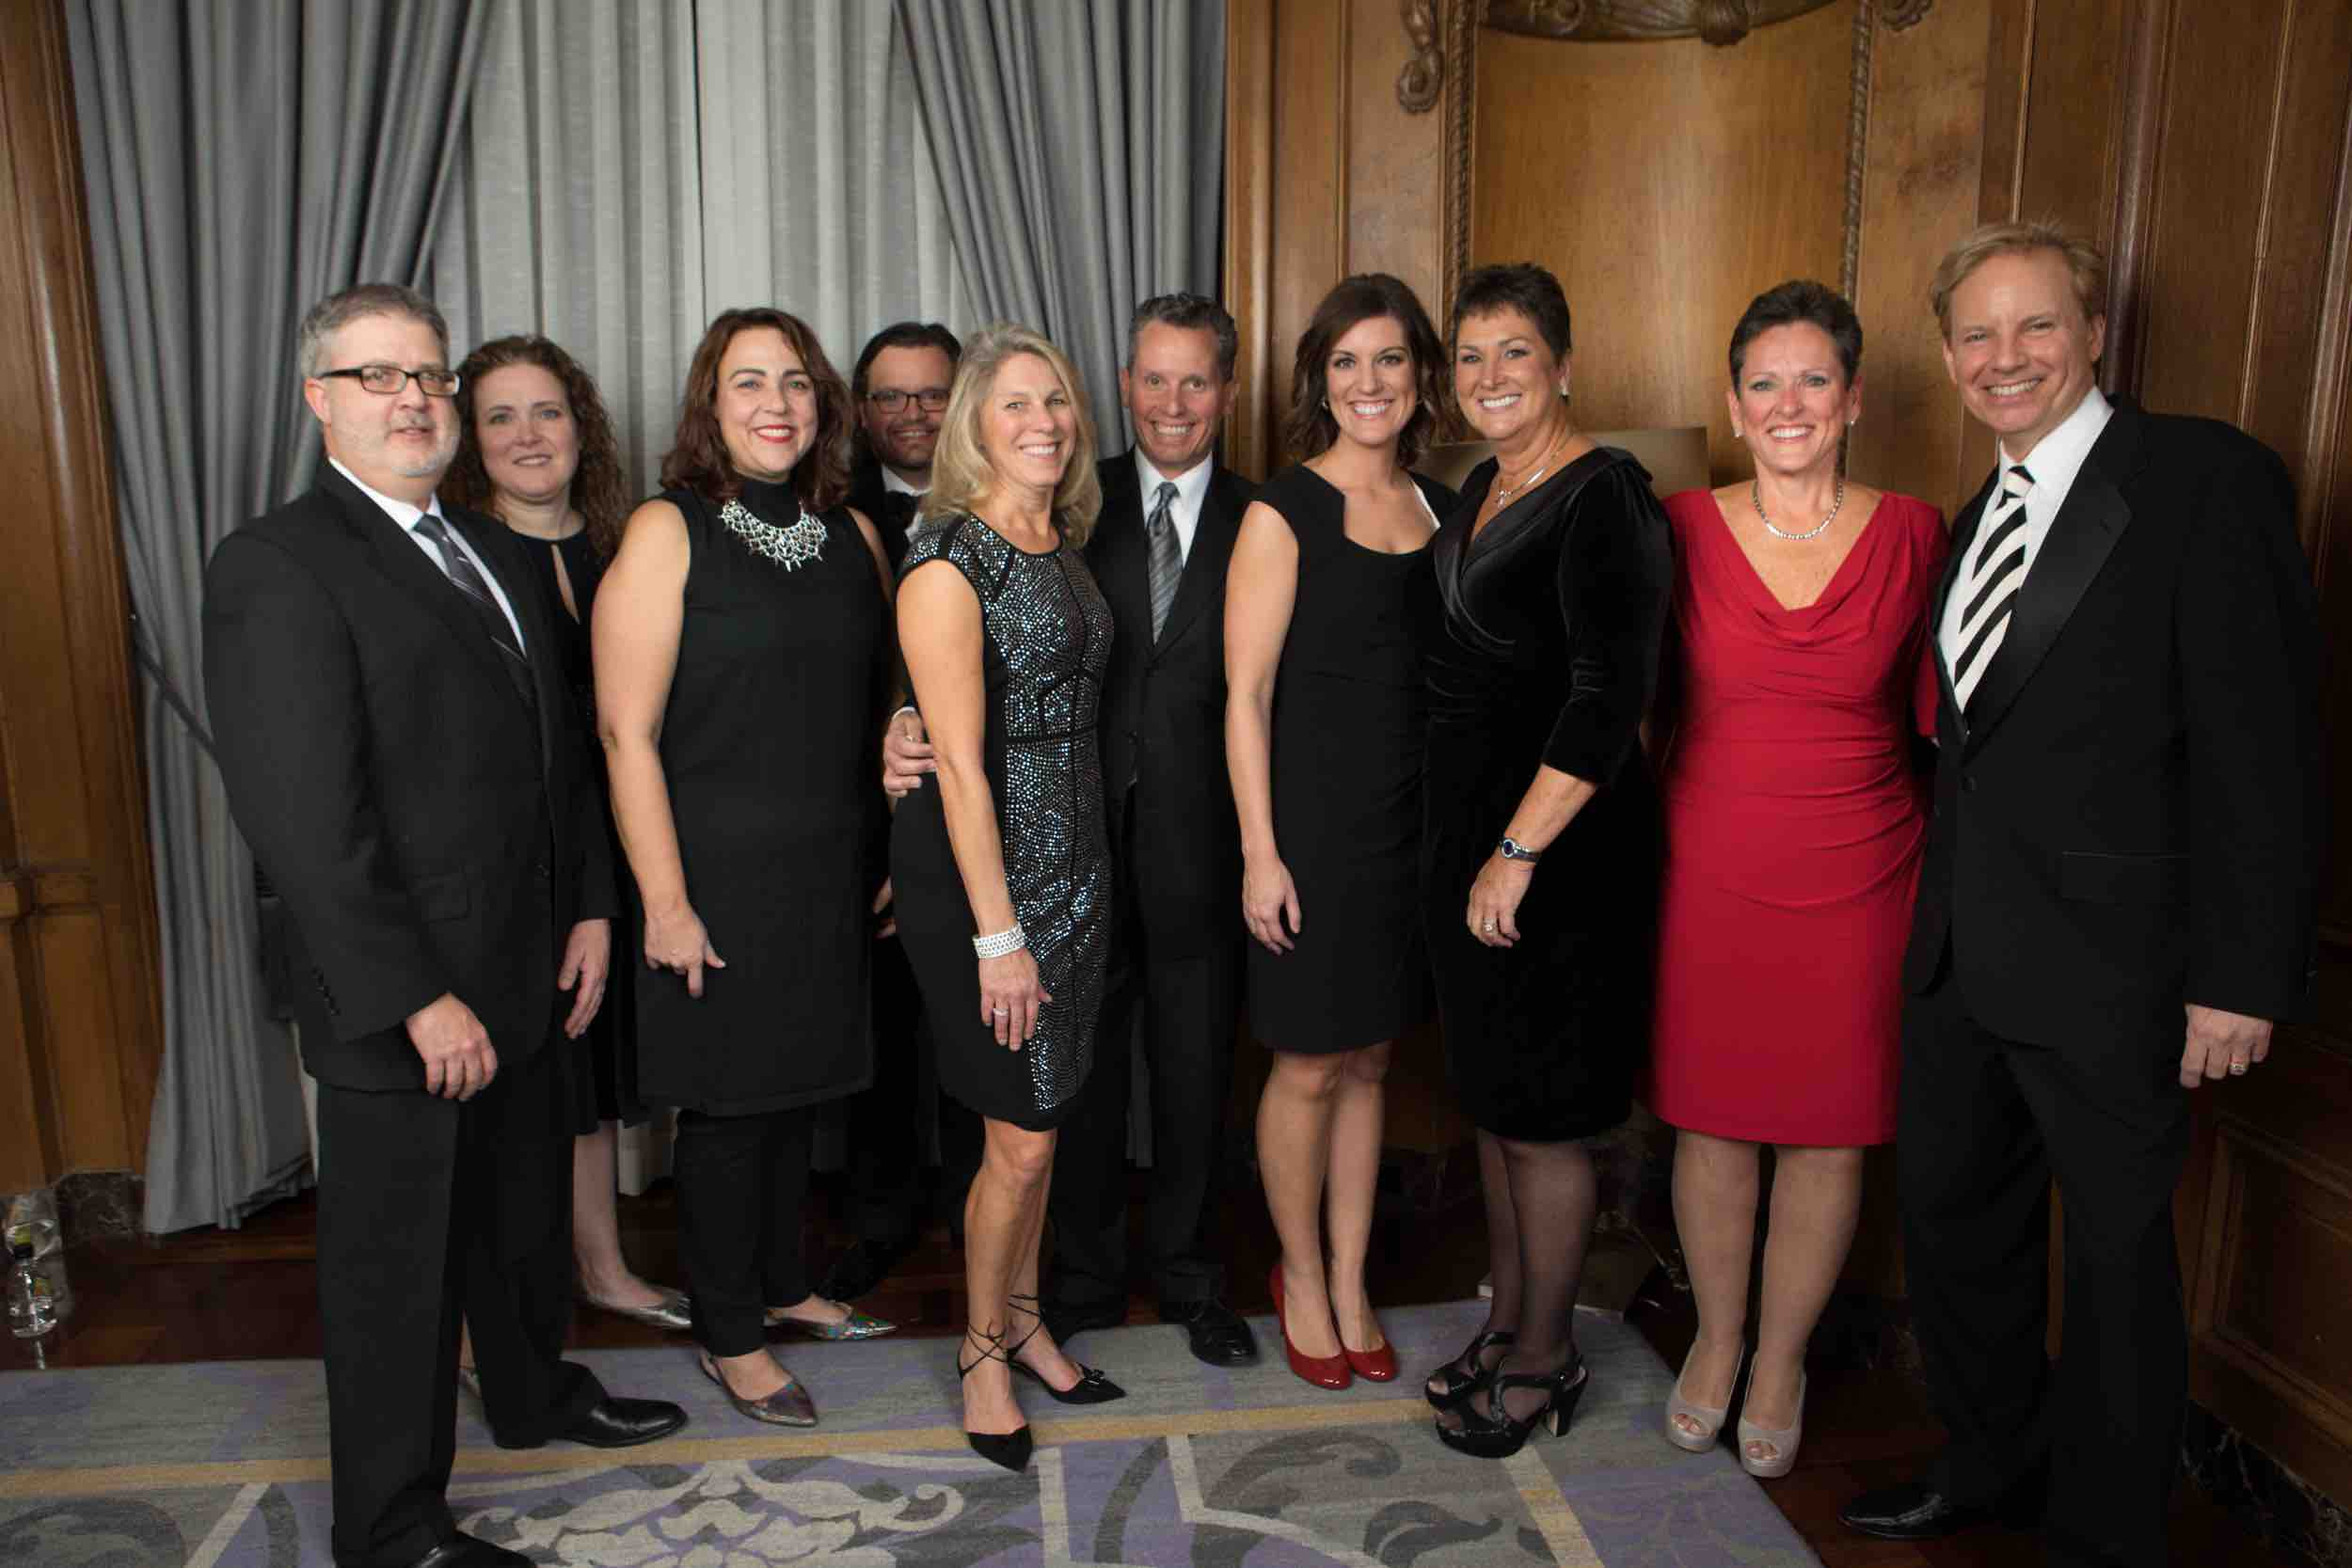 The 2016 Women Leaders in Consulting: The Gala